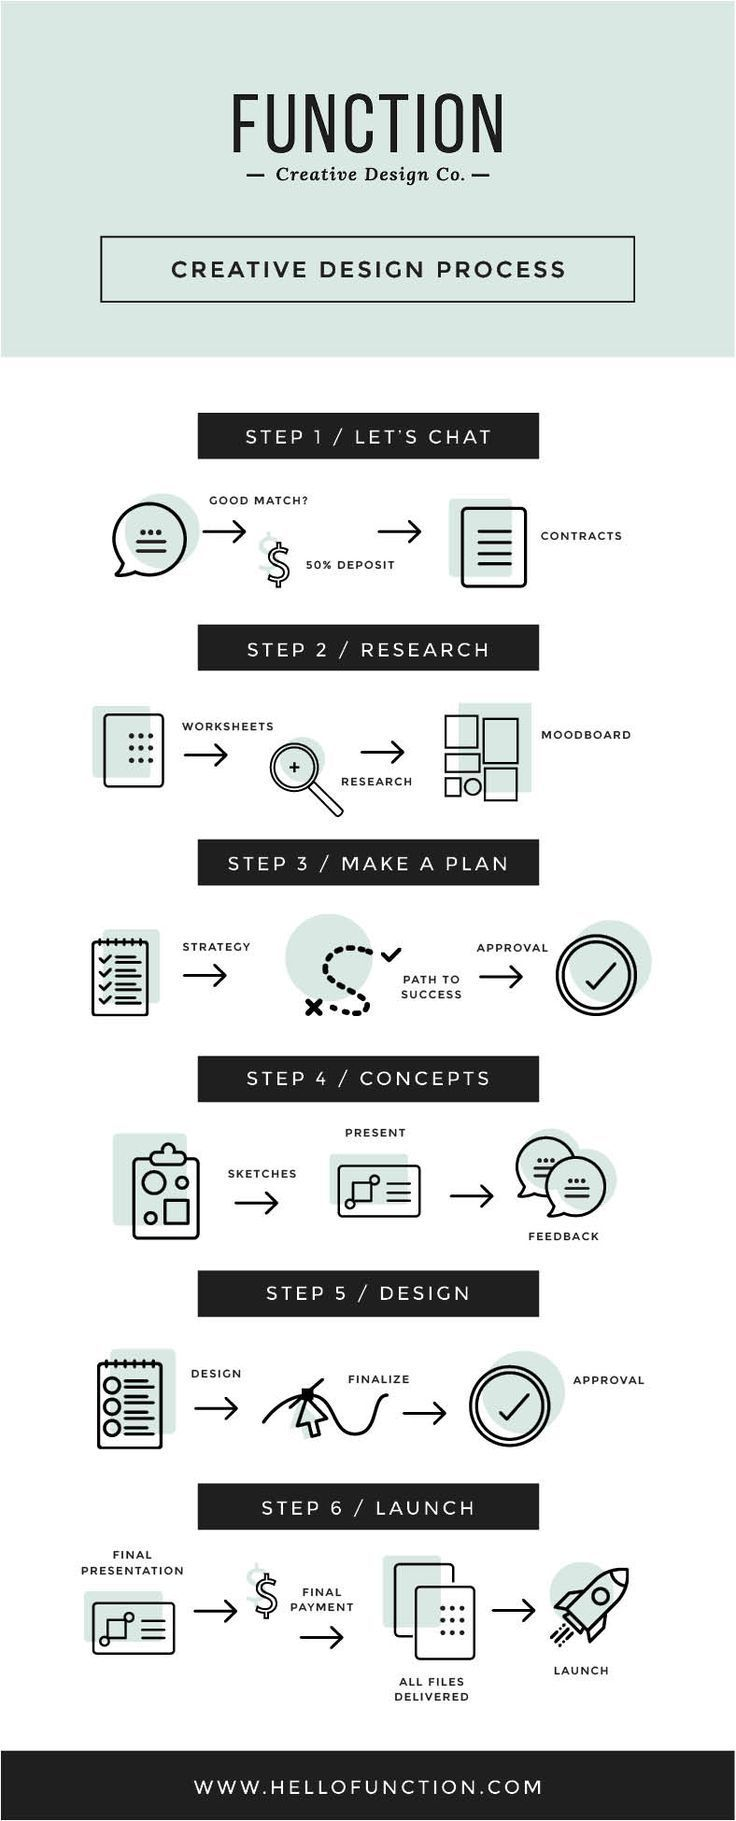 The Importance of Having a Solid Design Process - Design process, Business infographic, Design process steps, Freelance graphic design, Graphic design tips, Web design tips - If you're a graphic design entrepreneur, a solid design process is crucial to your success  It puts the designer in the driver's seat (as the expert) and the clients in the passenger seat (to sit back, relax, and enjoy the ride)